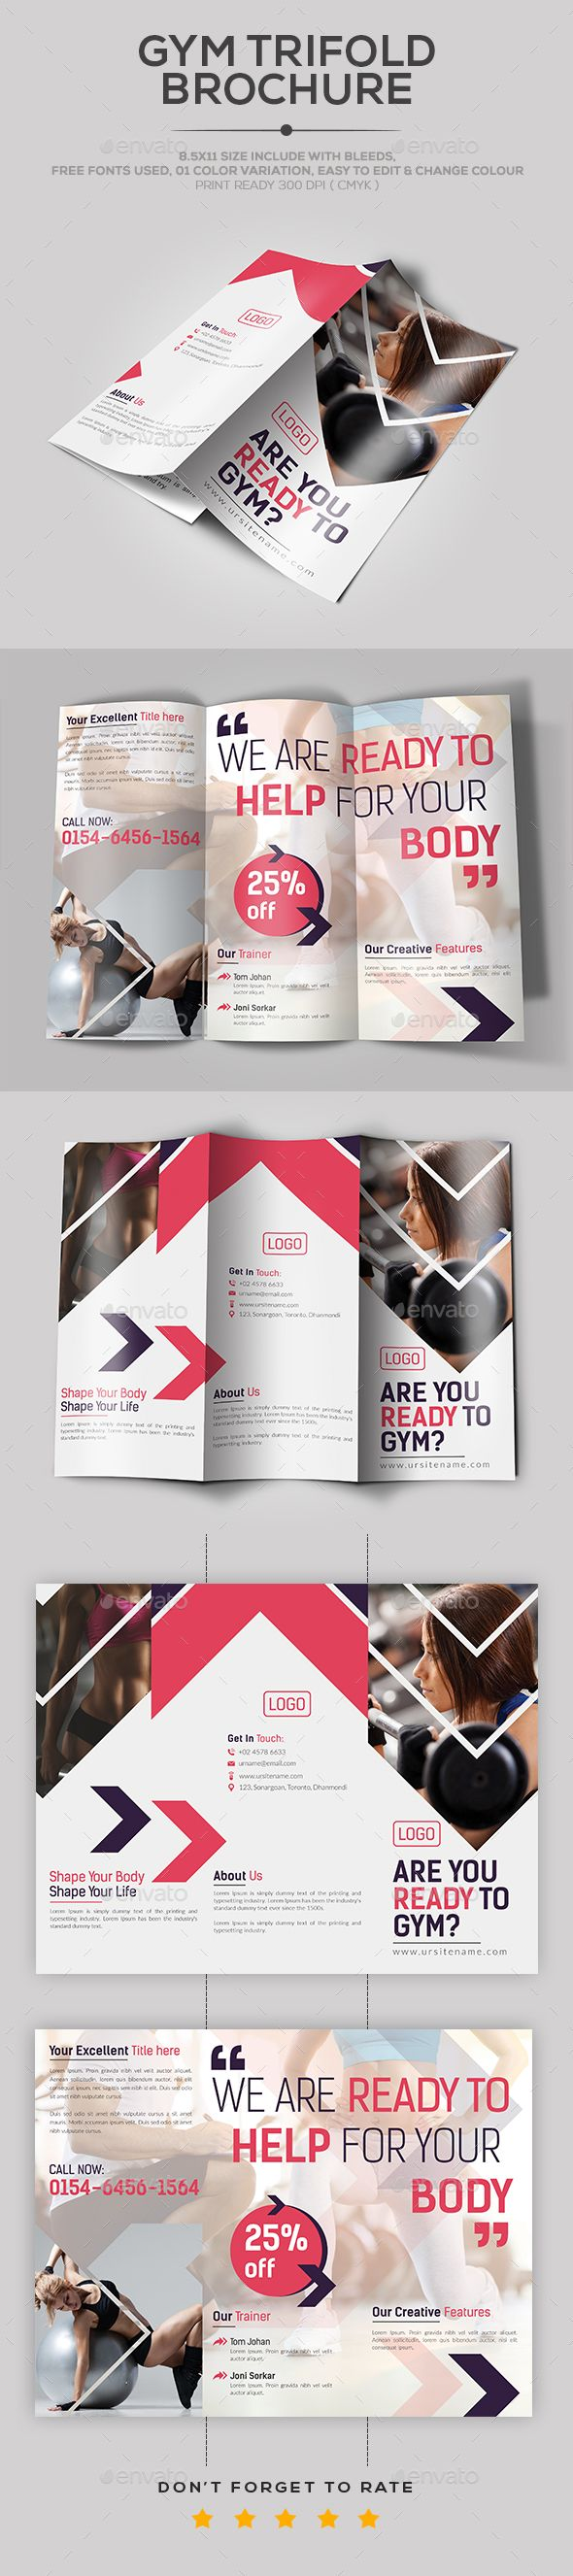 Gym Trifold Brochure  Brochures Brochure Template And Gym